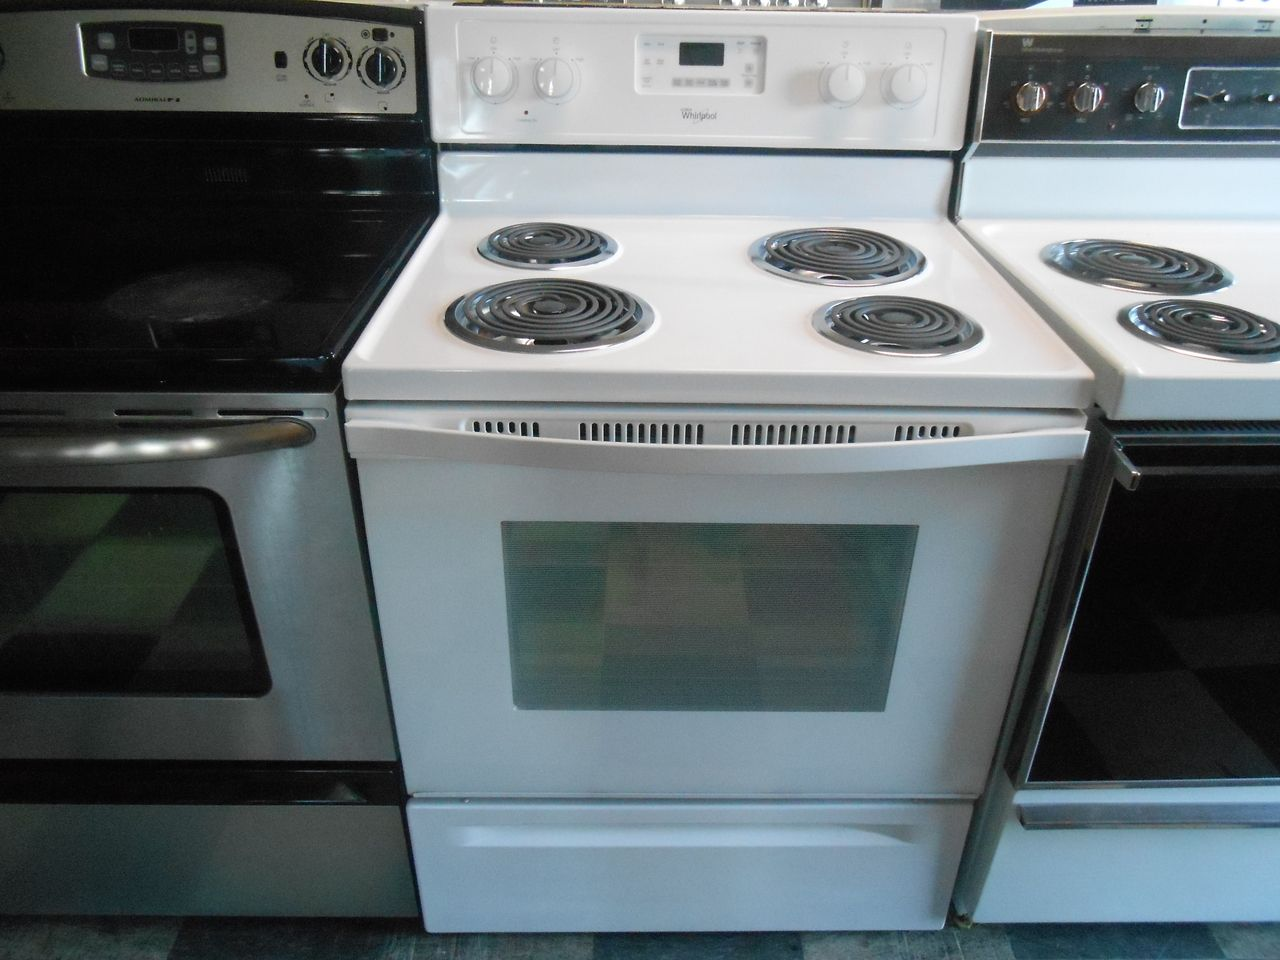 Uncategorized Kitchen Appliance City appliance city whirlpool 30 inch electric range free standing 4 coil burners burner 2 large